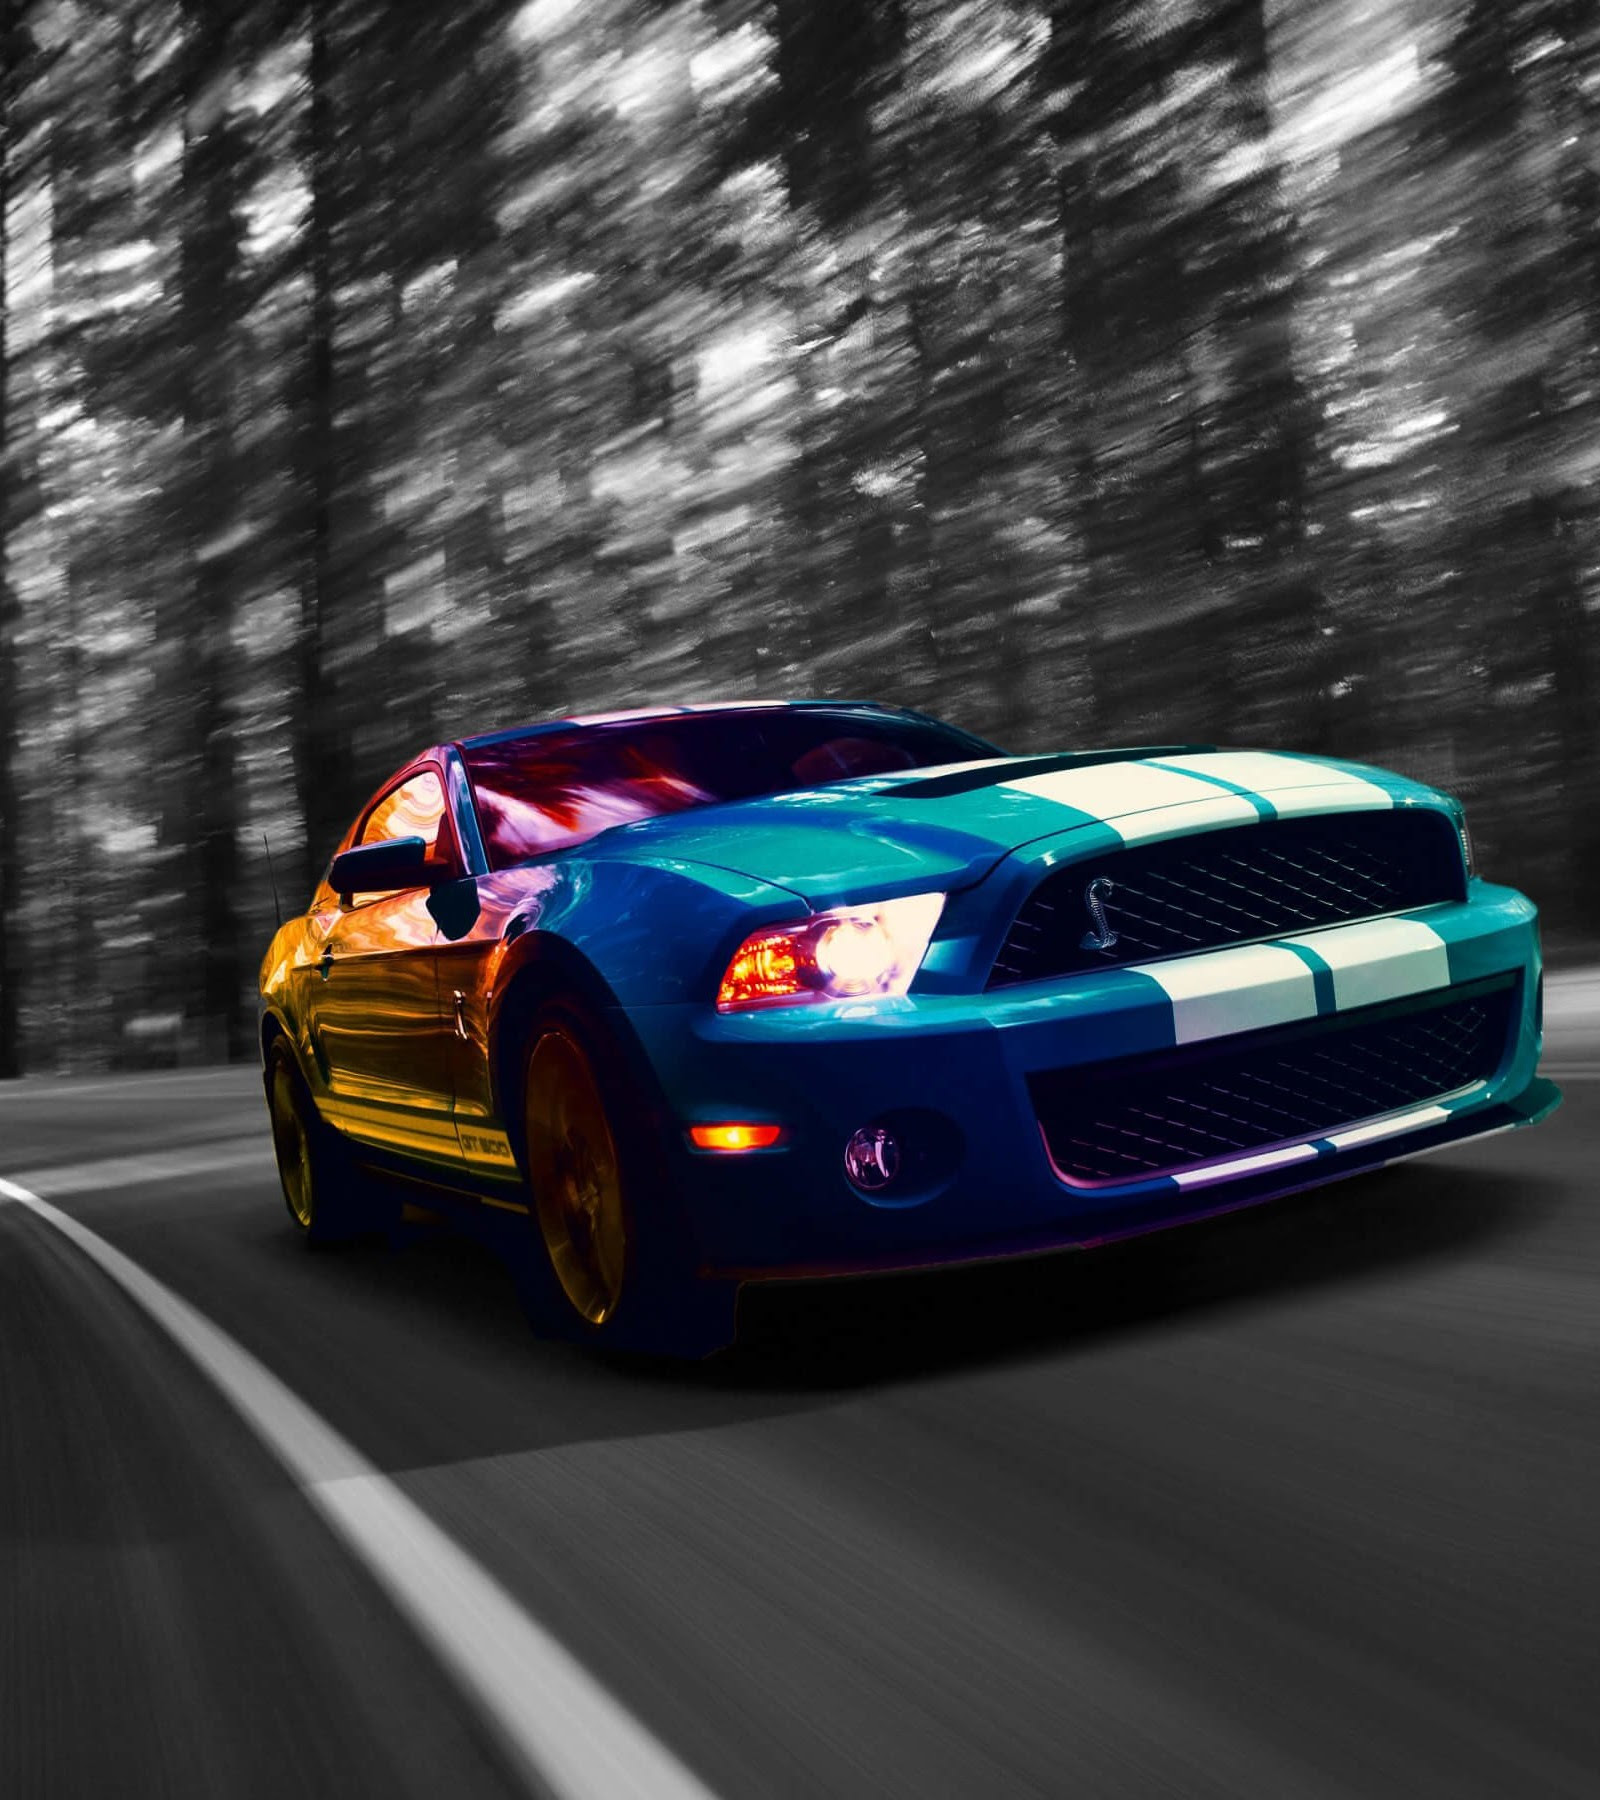 Ford Mustang Shelby Gt500 Wallpapers Hd